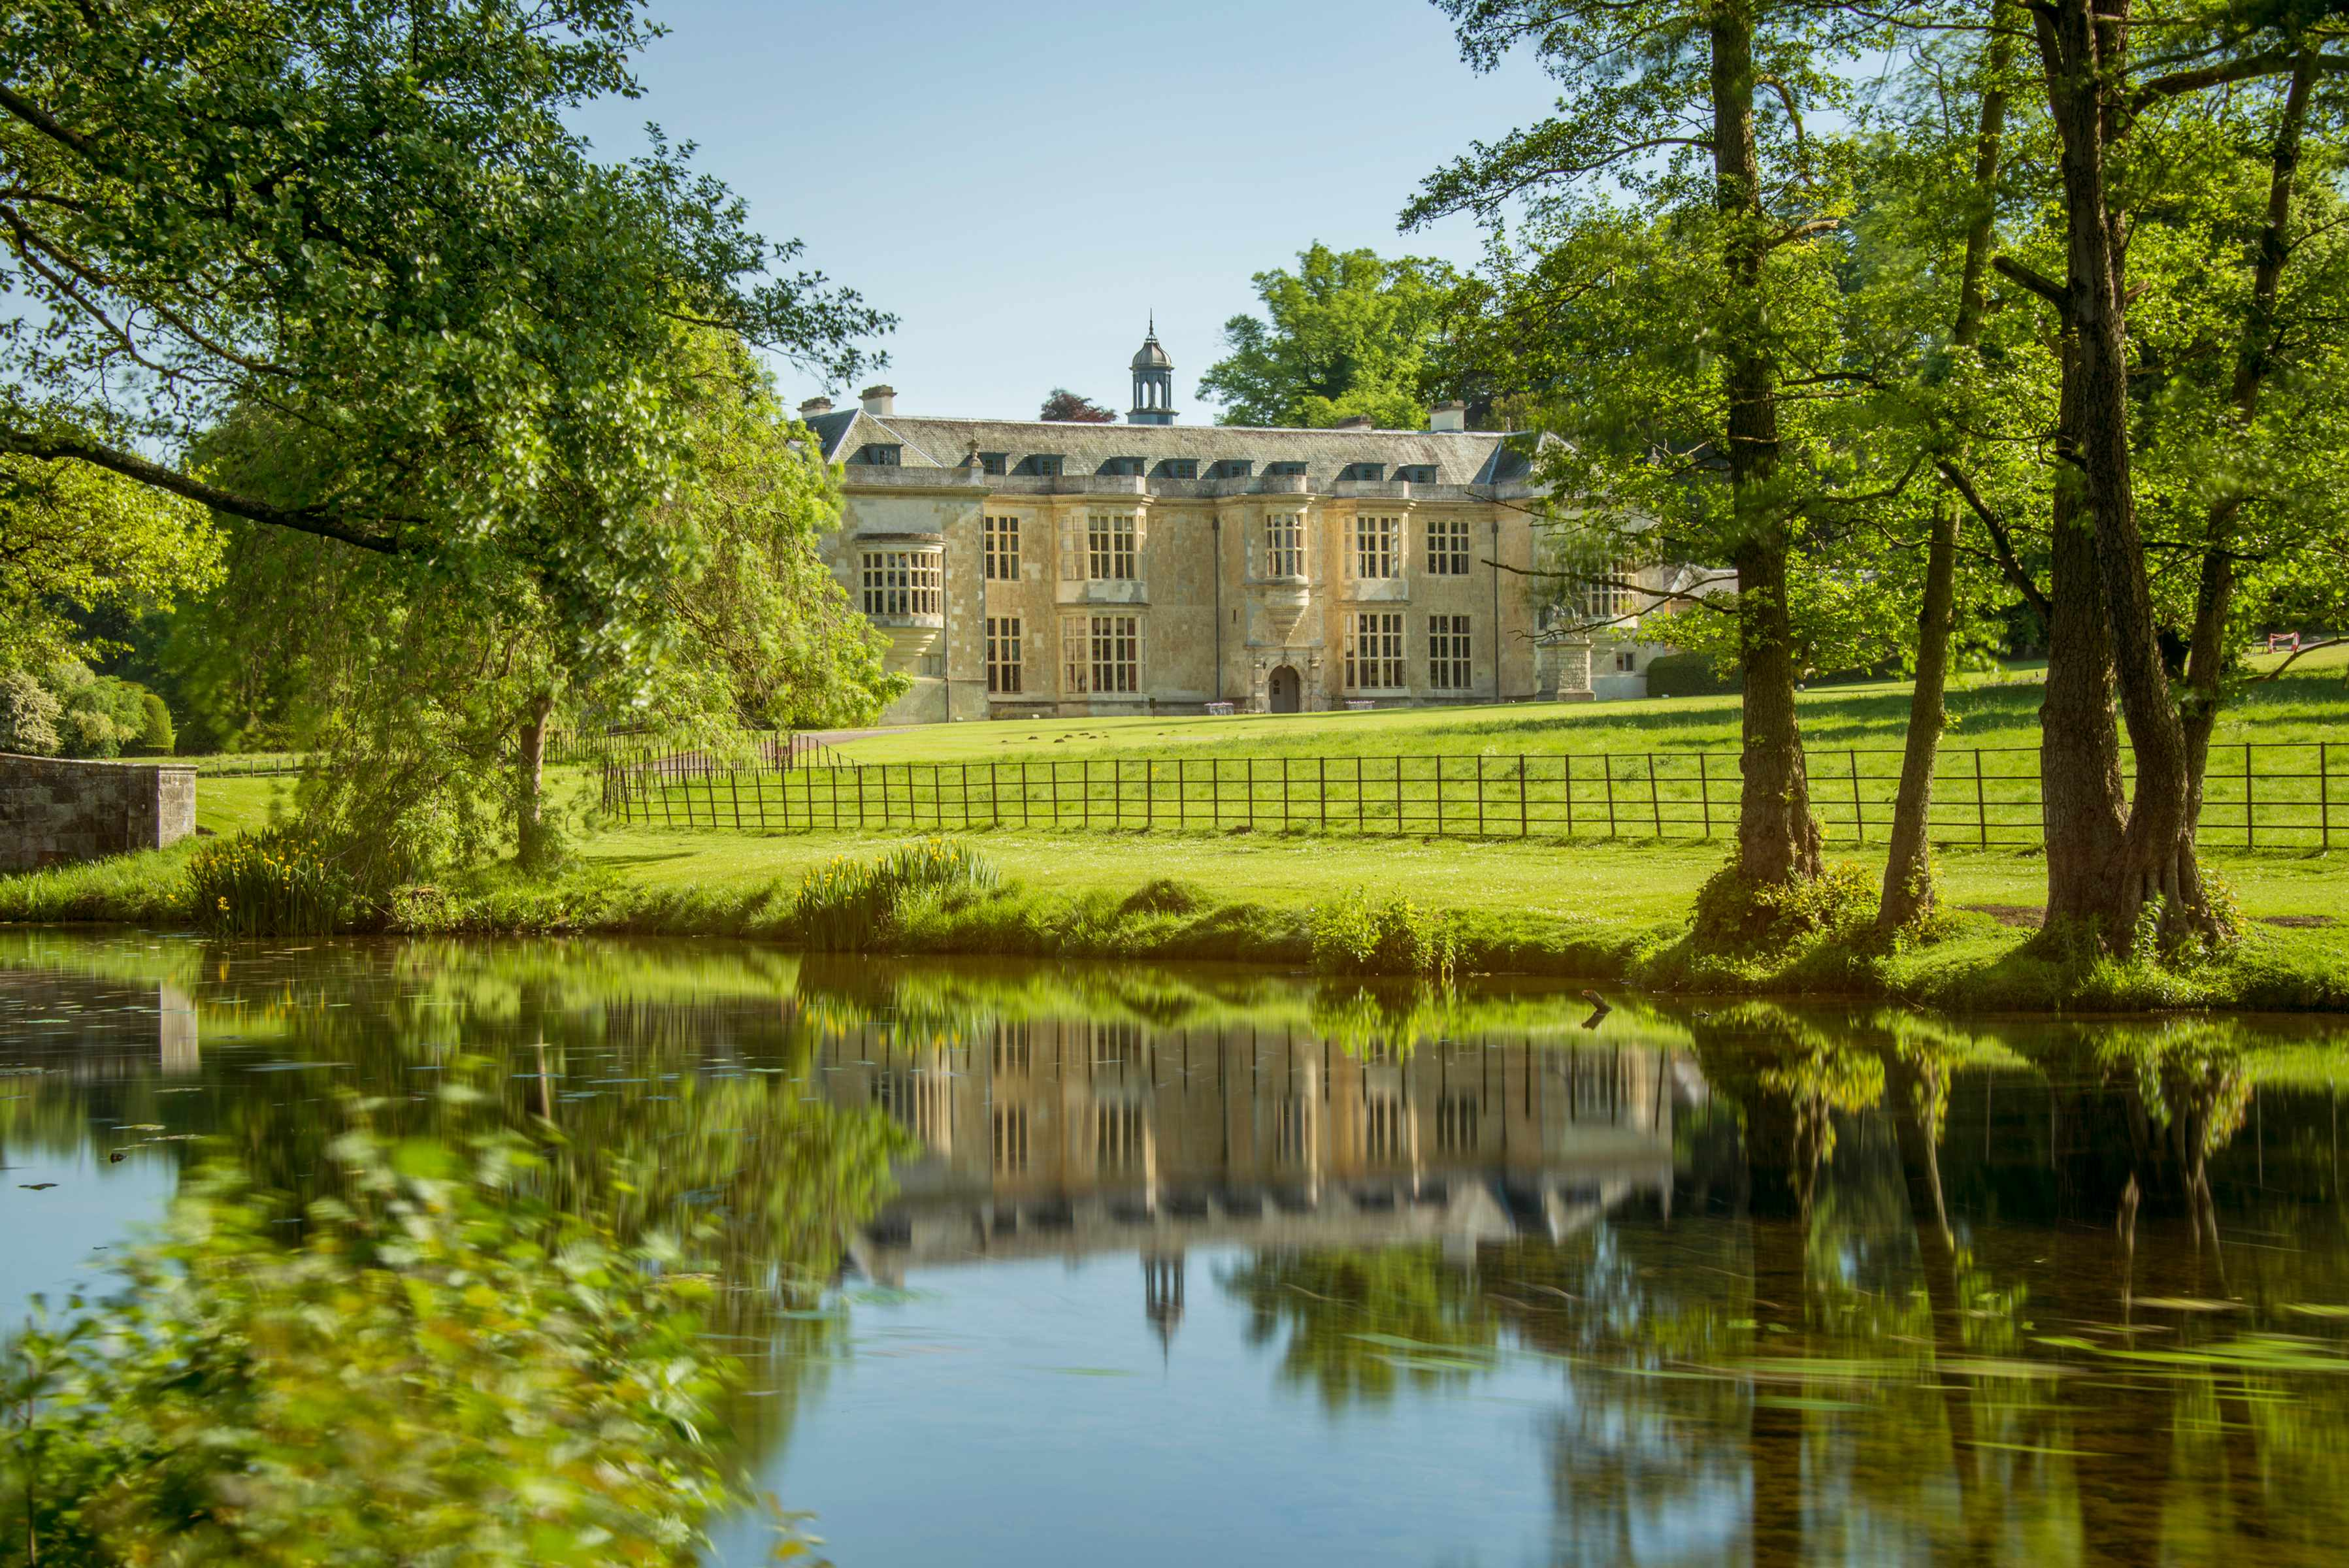 A view of Hartwell House on a sunny day across the river